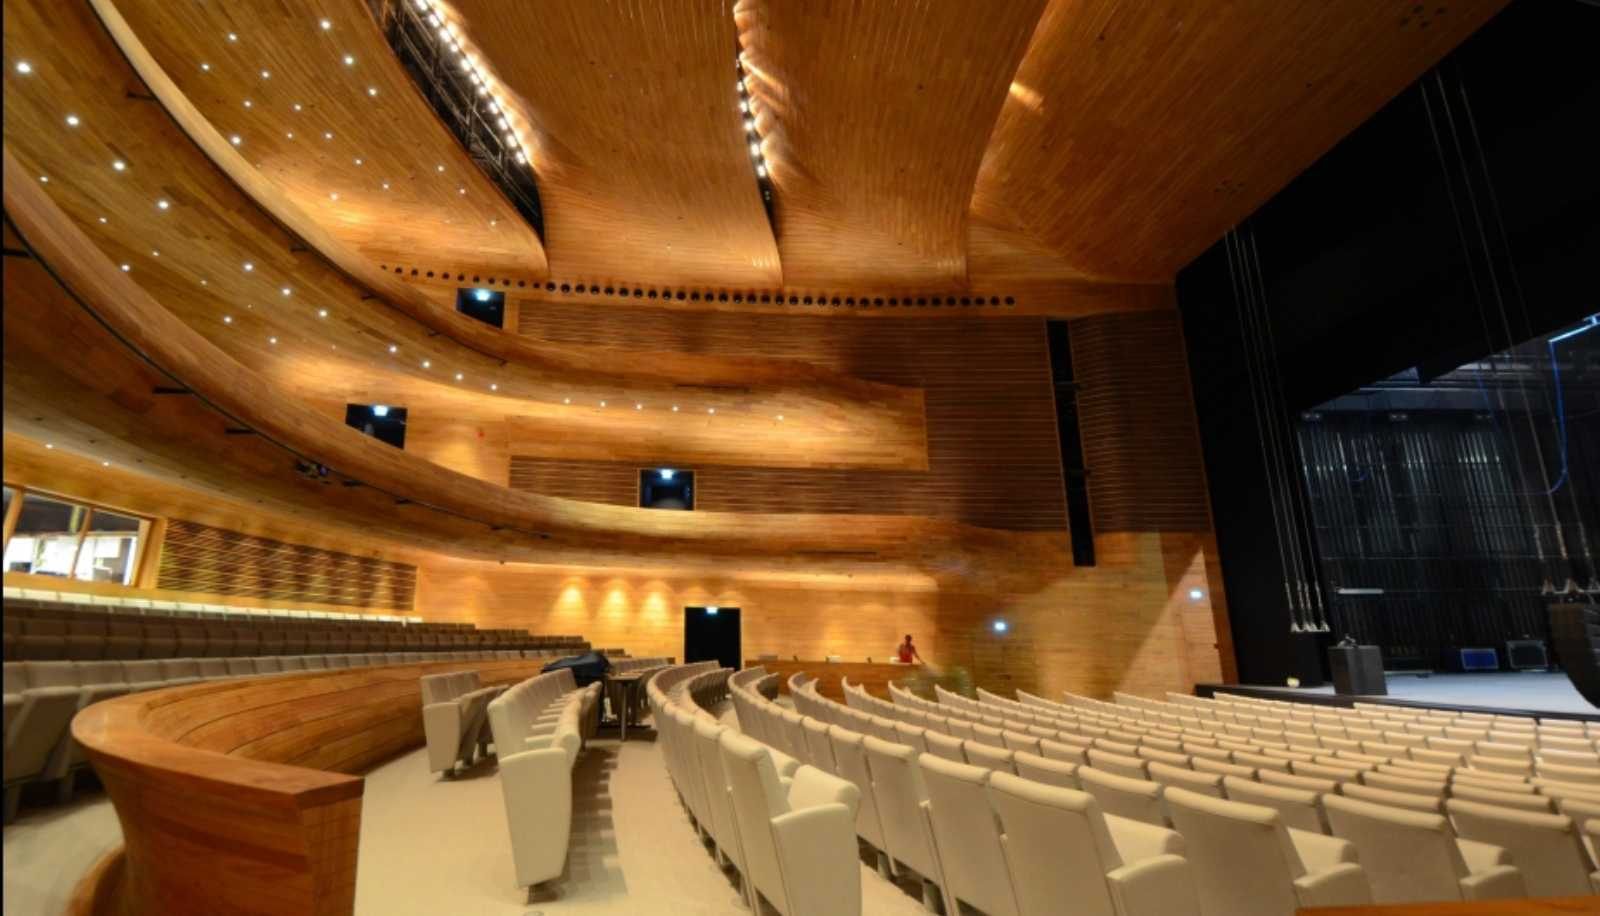 NATIONAL THEATRE OF BAHRAIN BY ARCHITECTURE STUDIO  A As